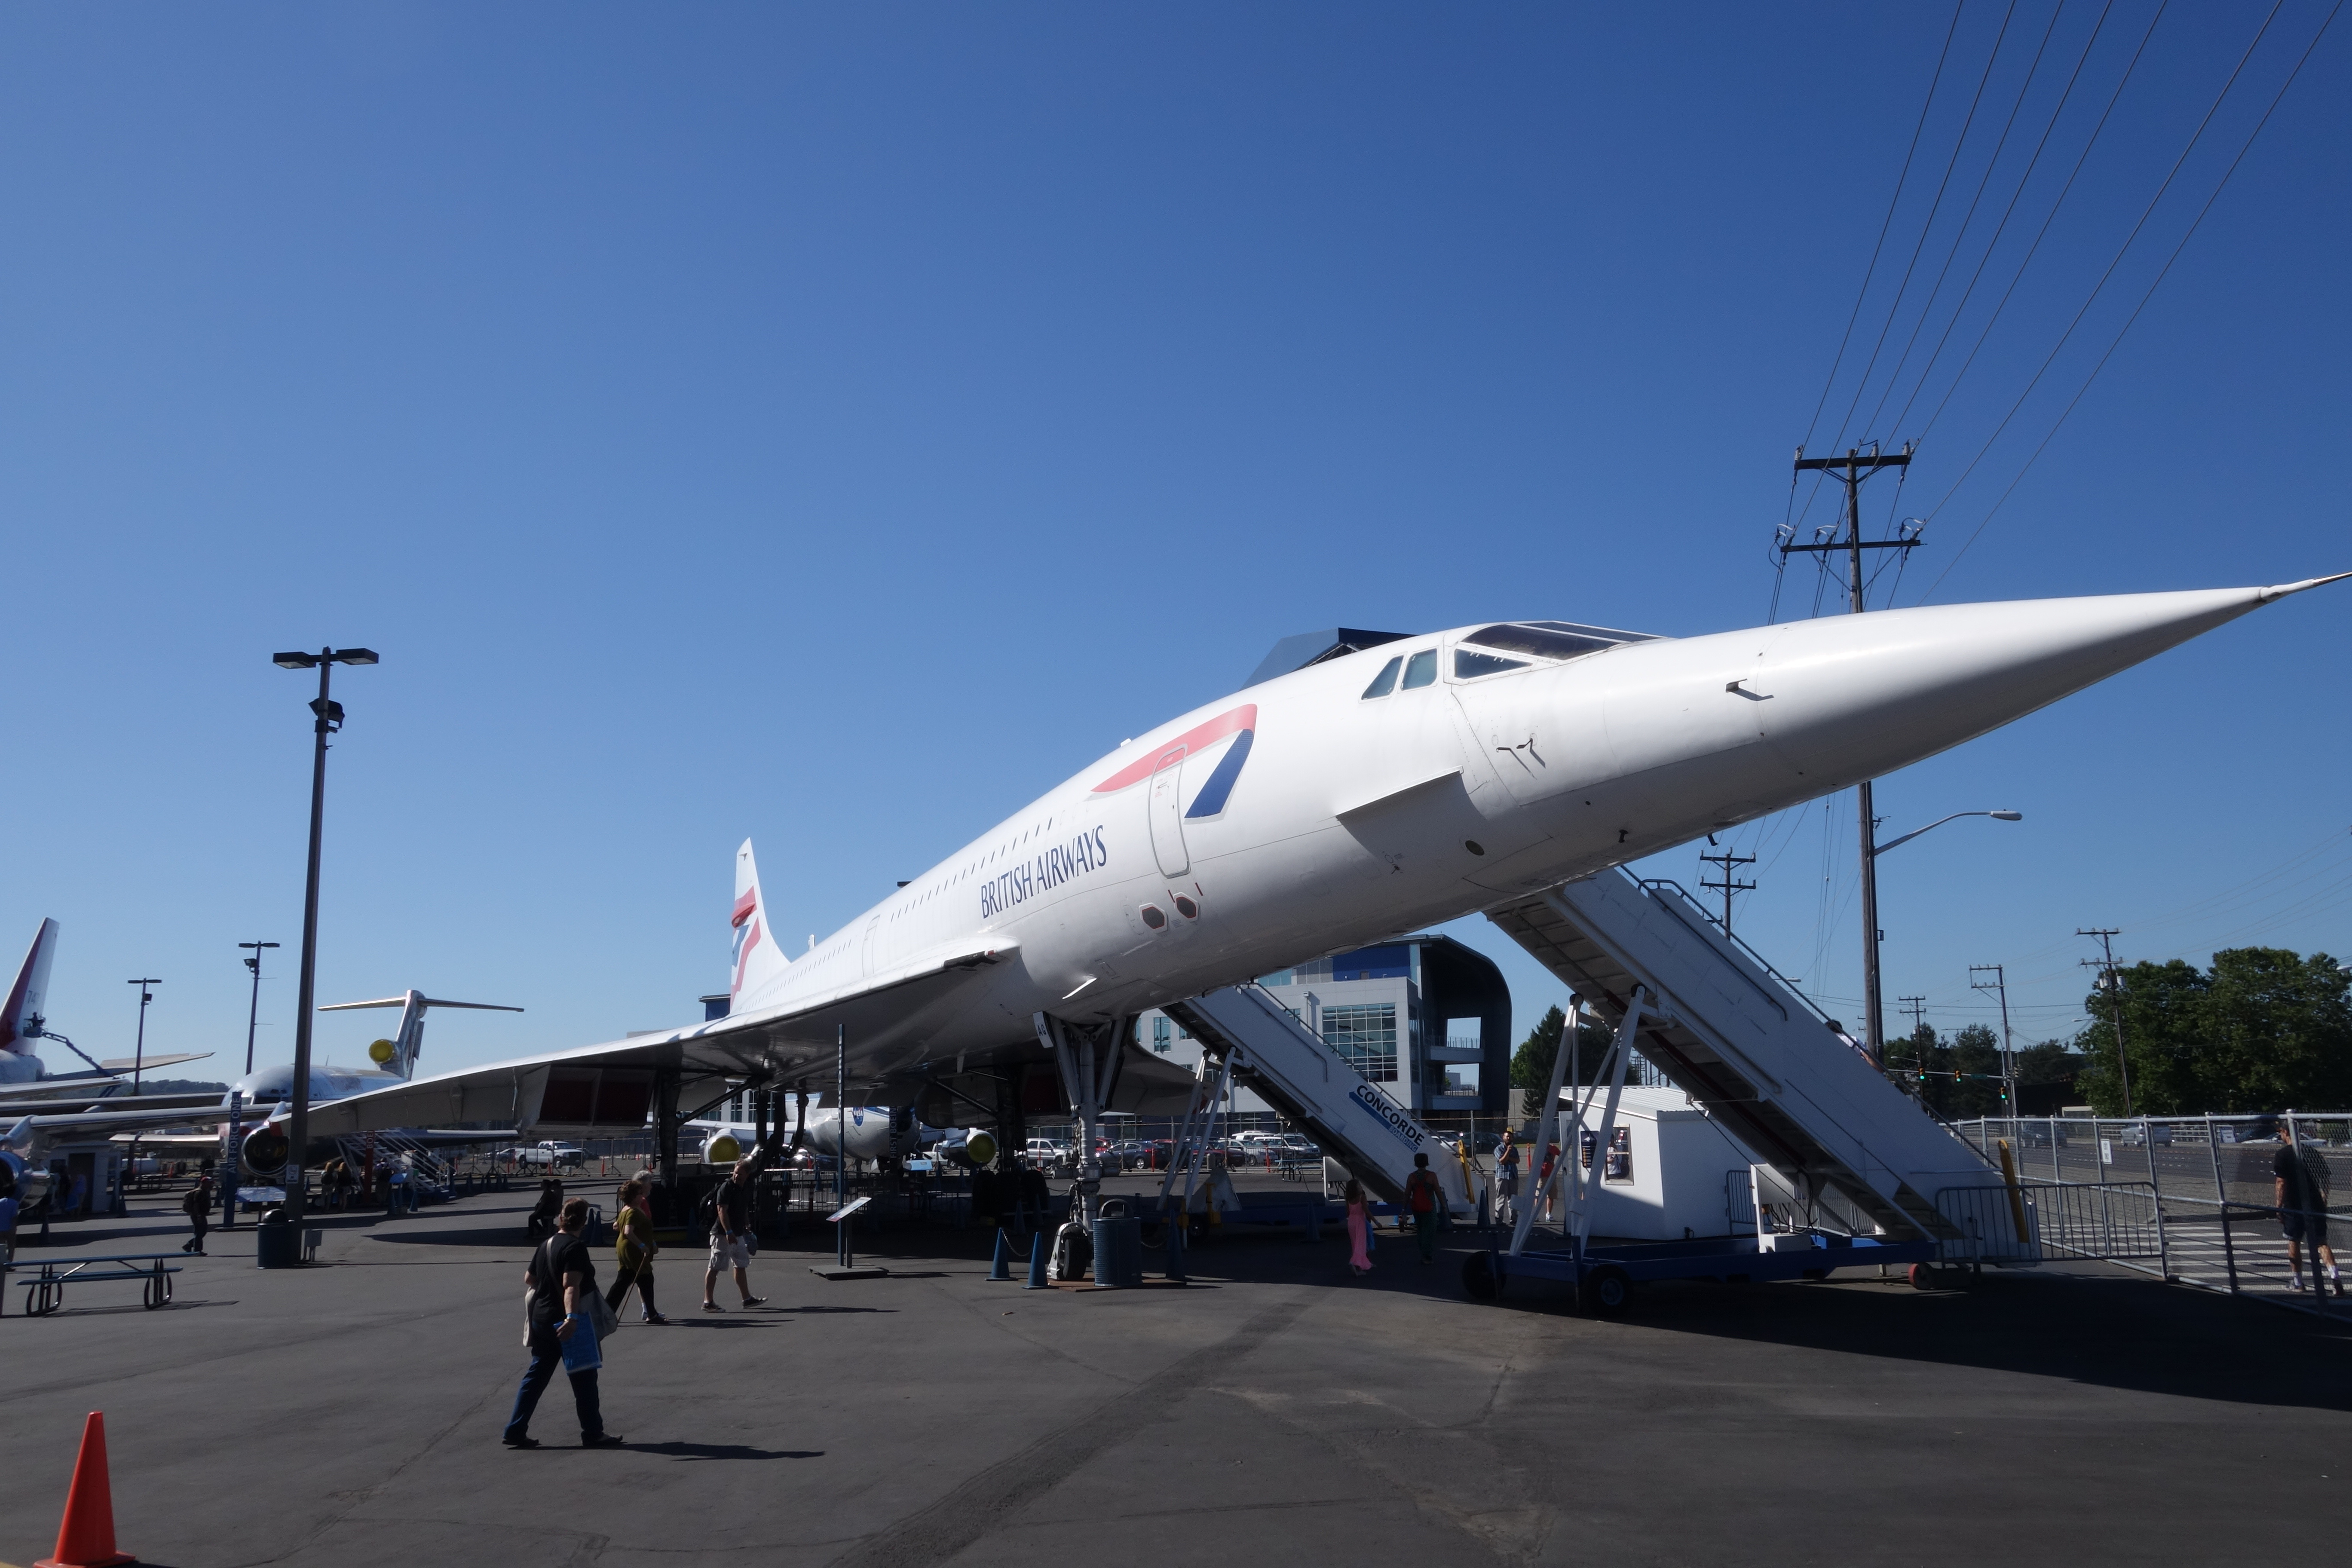 British Airways Concorde G-BOAG is open to visitors at the Museum of Flight in Seattle.